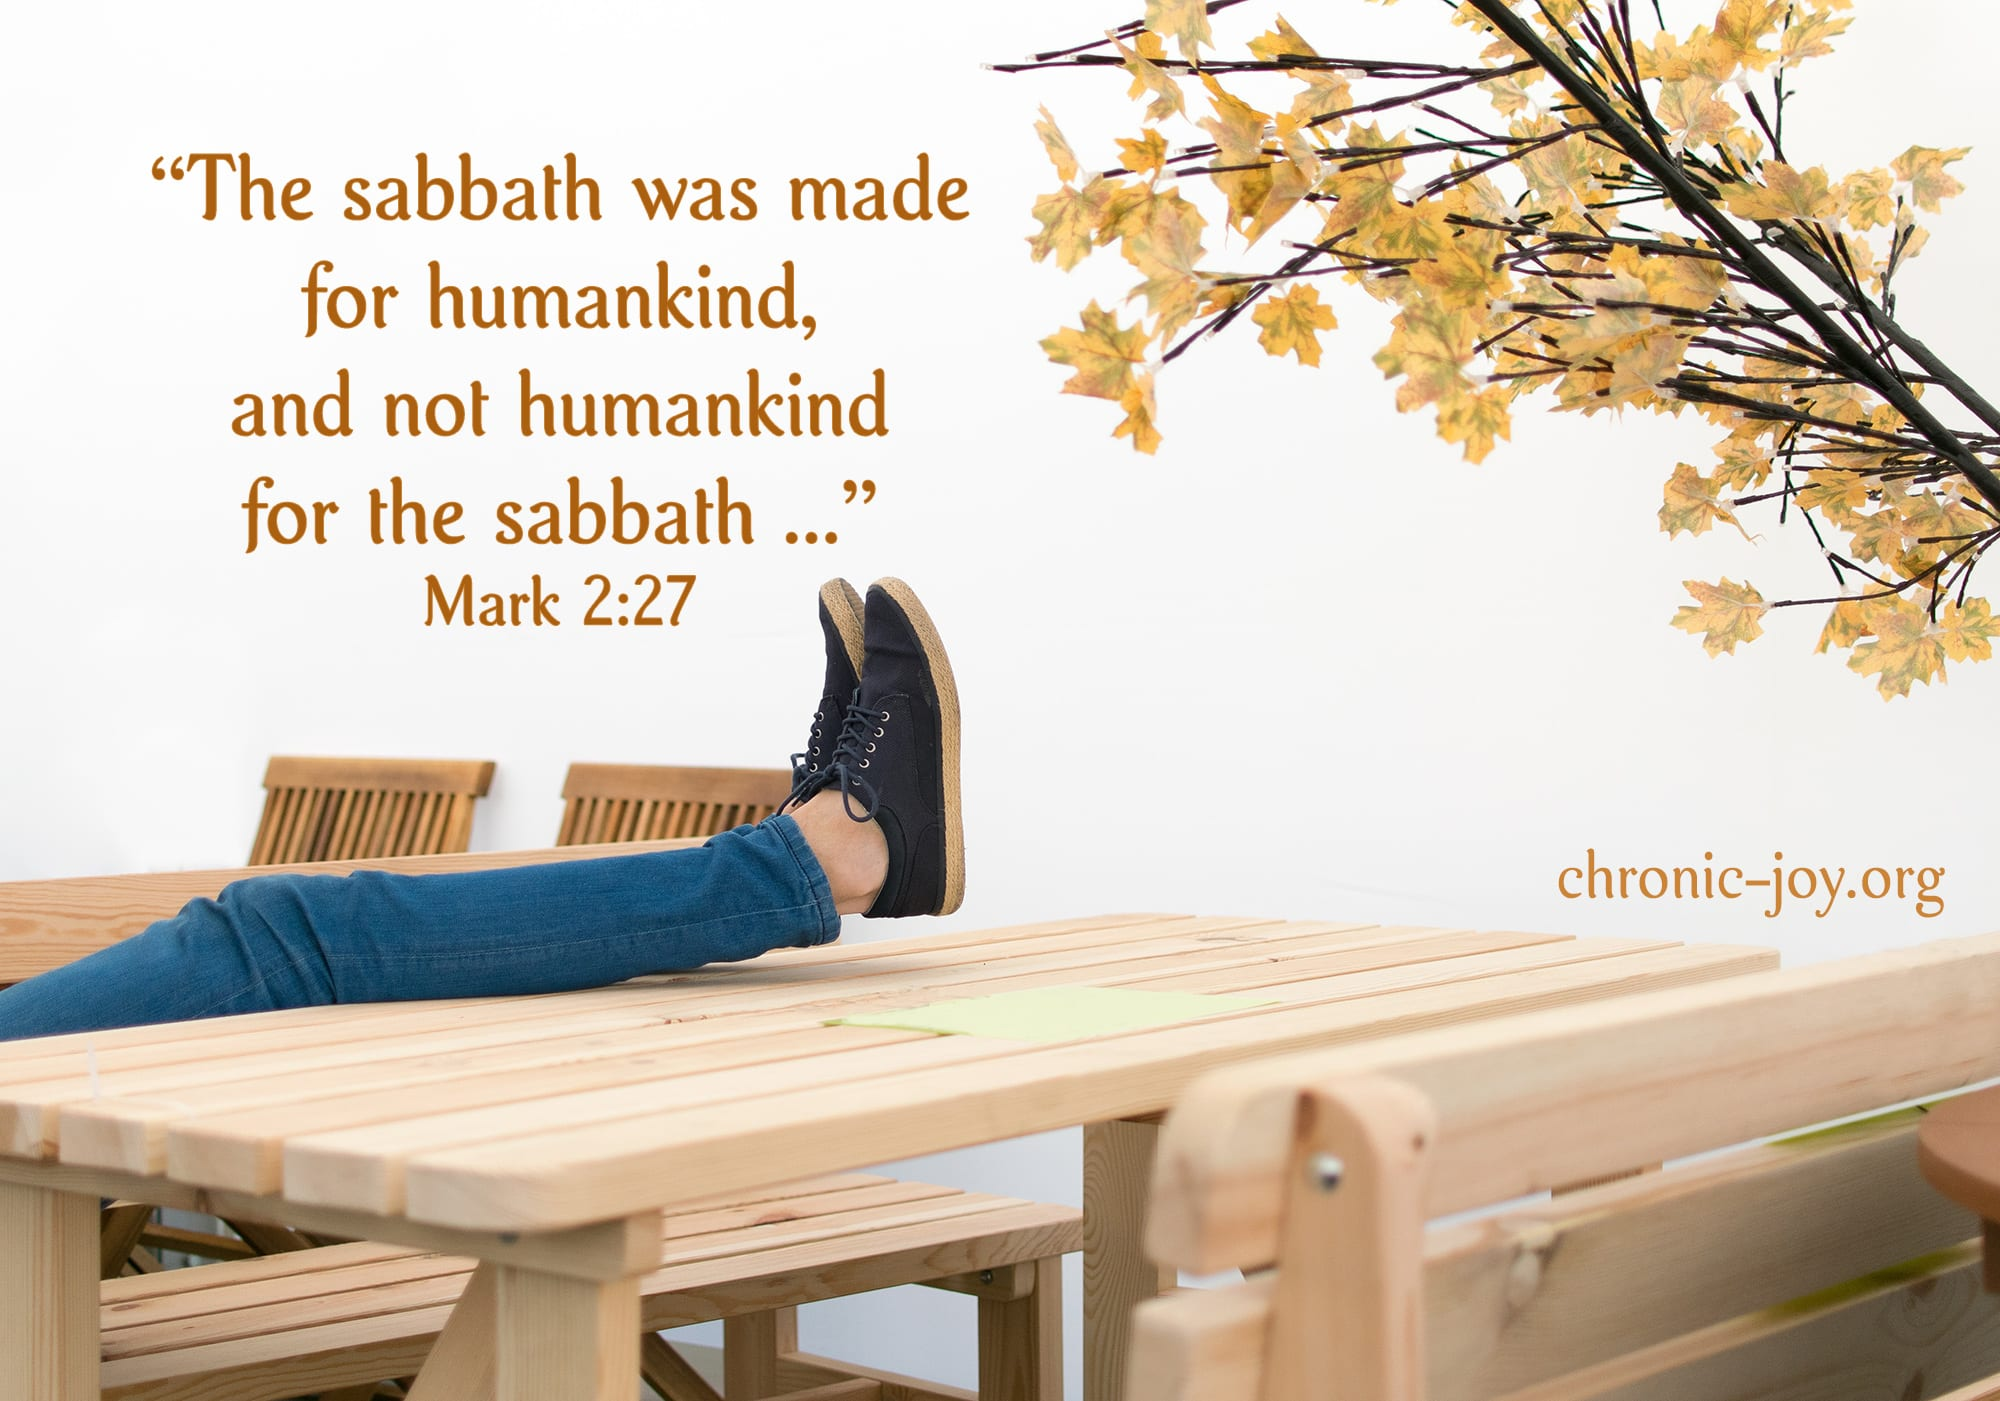 """The sabbath was made for humankind, and not humankind for the sabbath ..."" Mark 2:27"